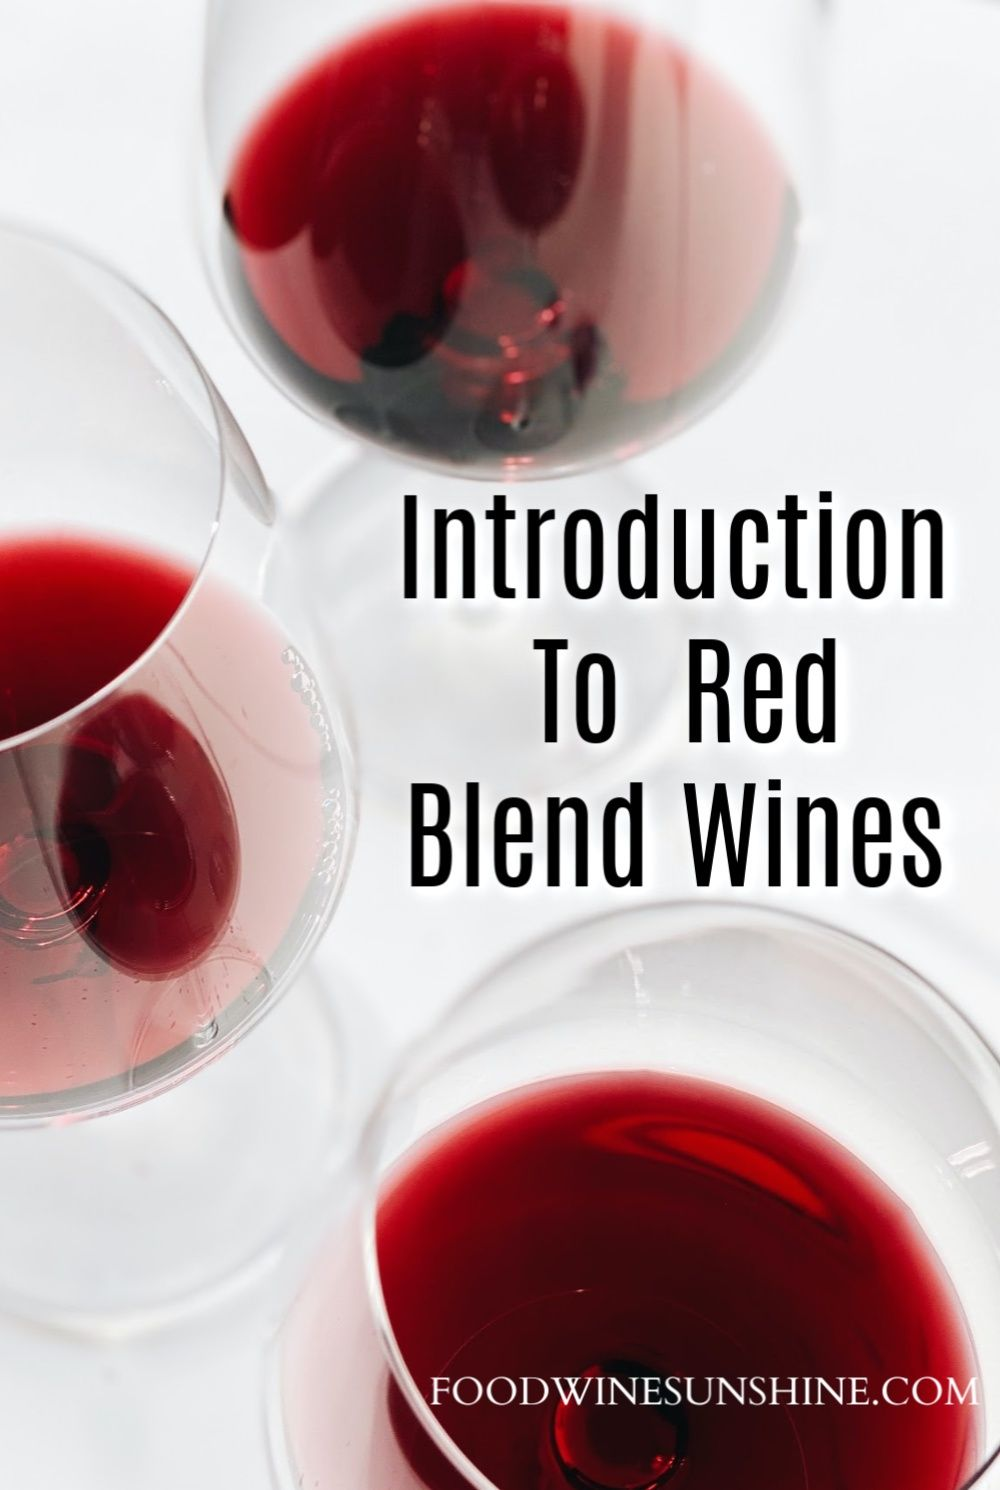 Introduction To Red Blend Wines In 2020 Vegan Recipes Easy Wine Recipes Red Blend Wine